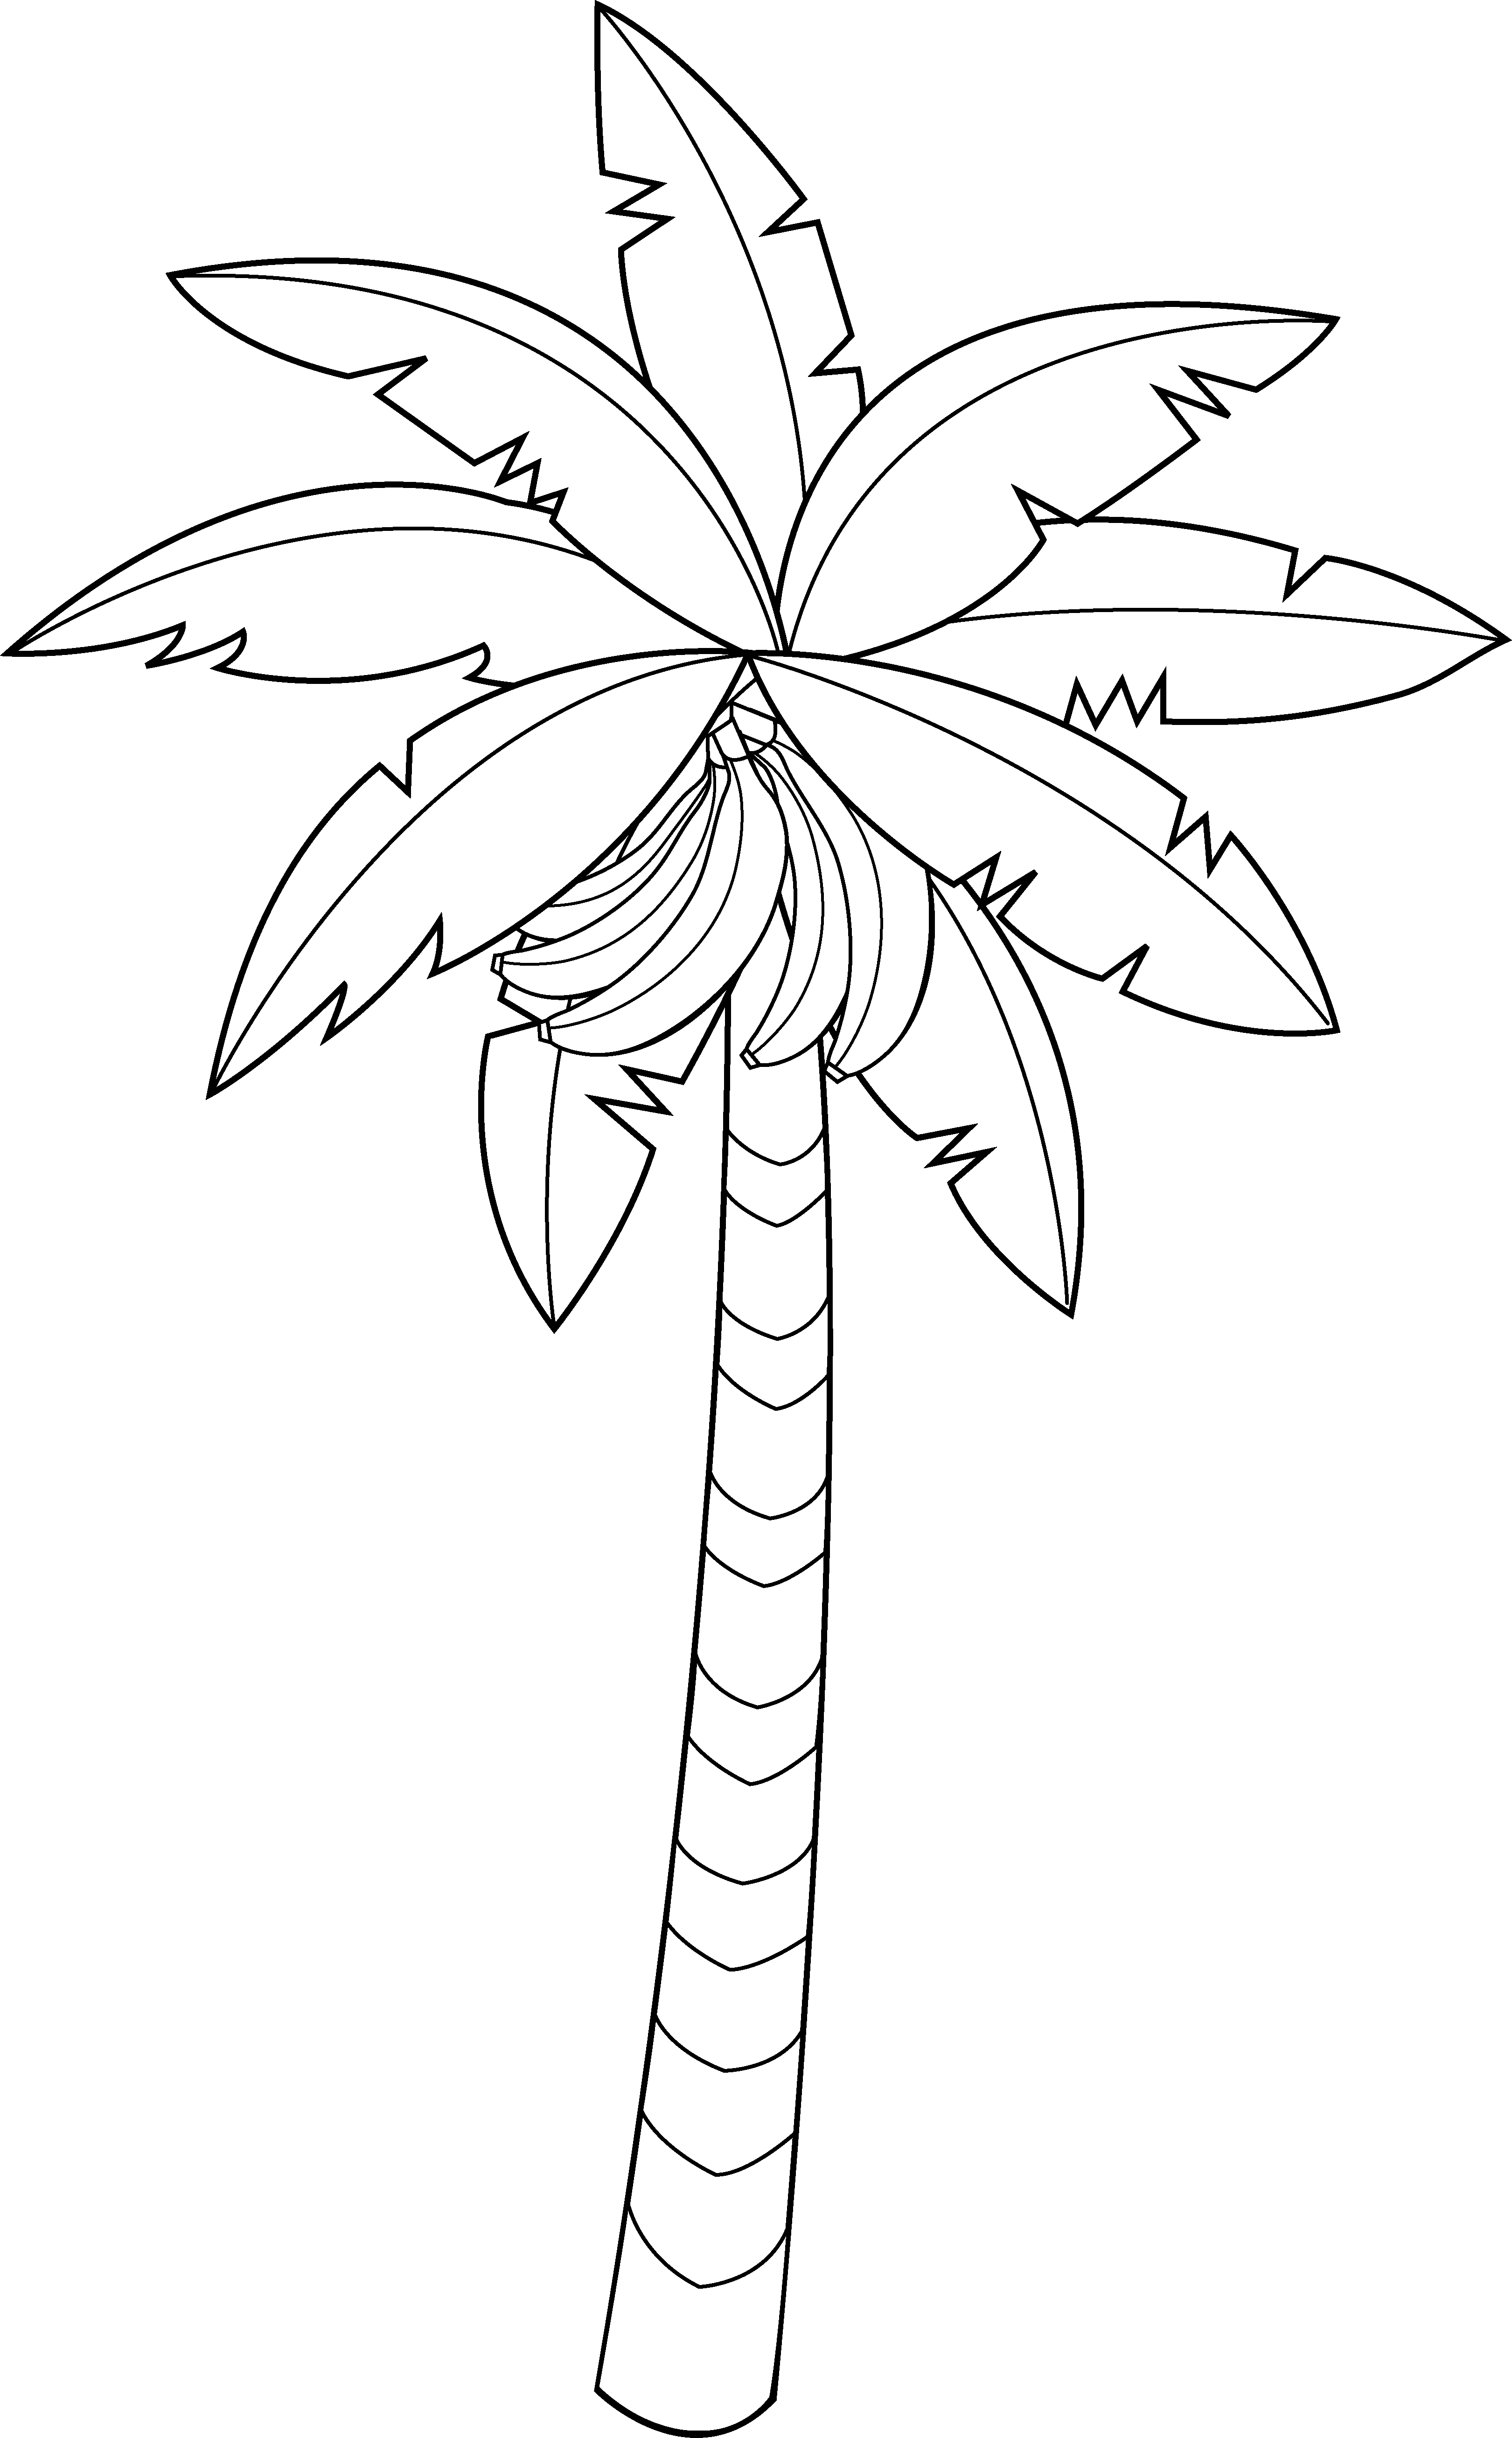 Banana tree clipart black and white svg transparent download Banana Tree Line Art - Free Clip Art svg transparent download